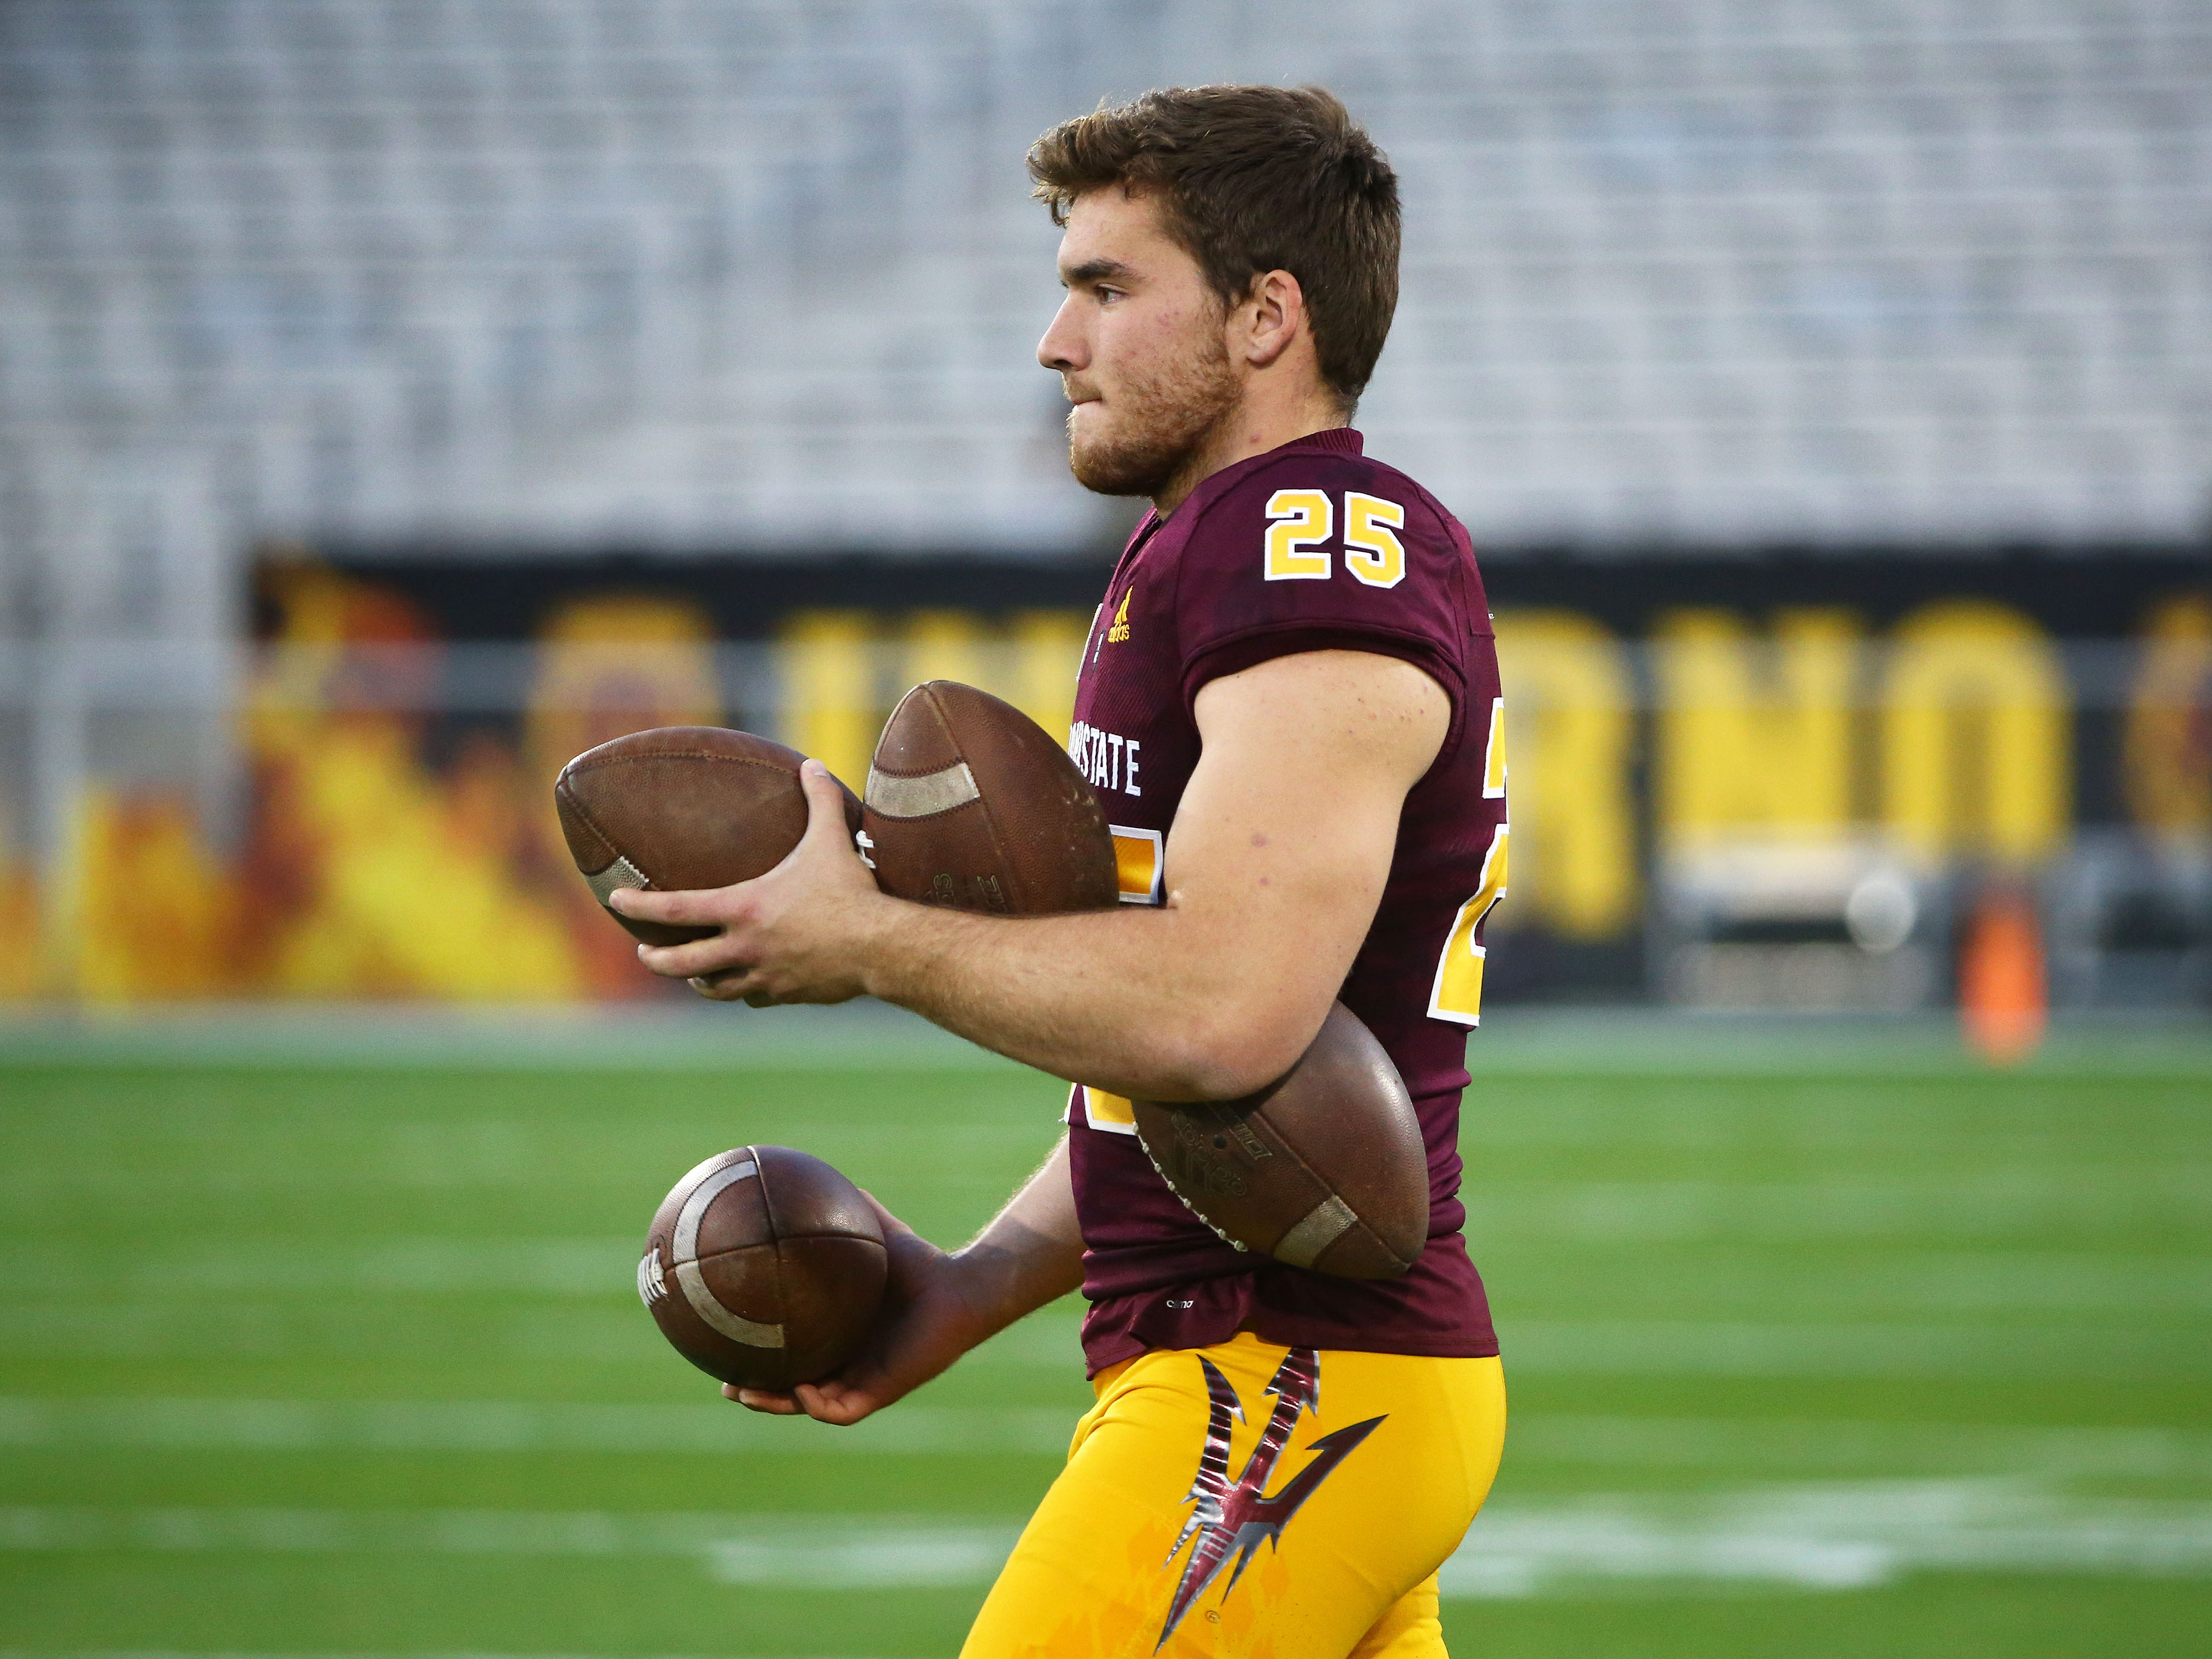 Arizona State punter Michael Turk (25) during the spring practice game on Feb. 28, 2019 at Sun Devil Stadium in Tempe, Ariz.